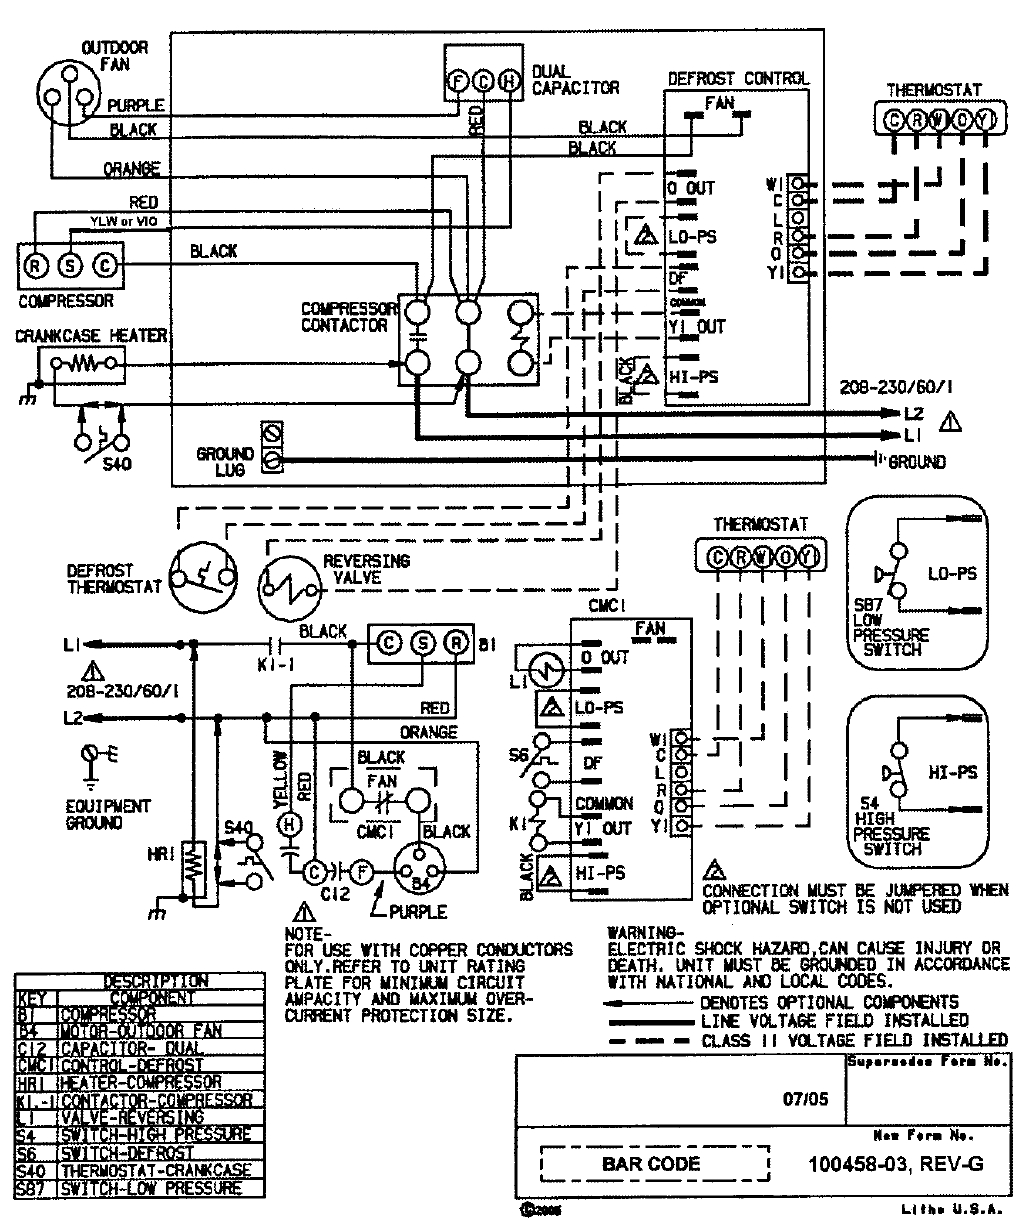 ducane heat pump wiring diagram Collection-Ducane Furnace Wiring Diagram Facybulka Me And 18-f